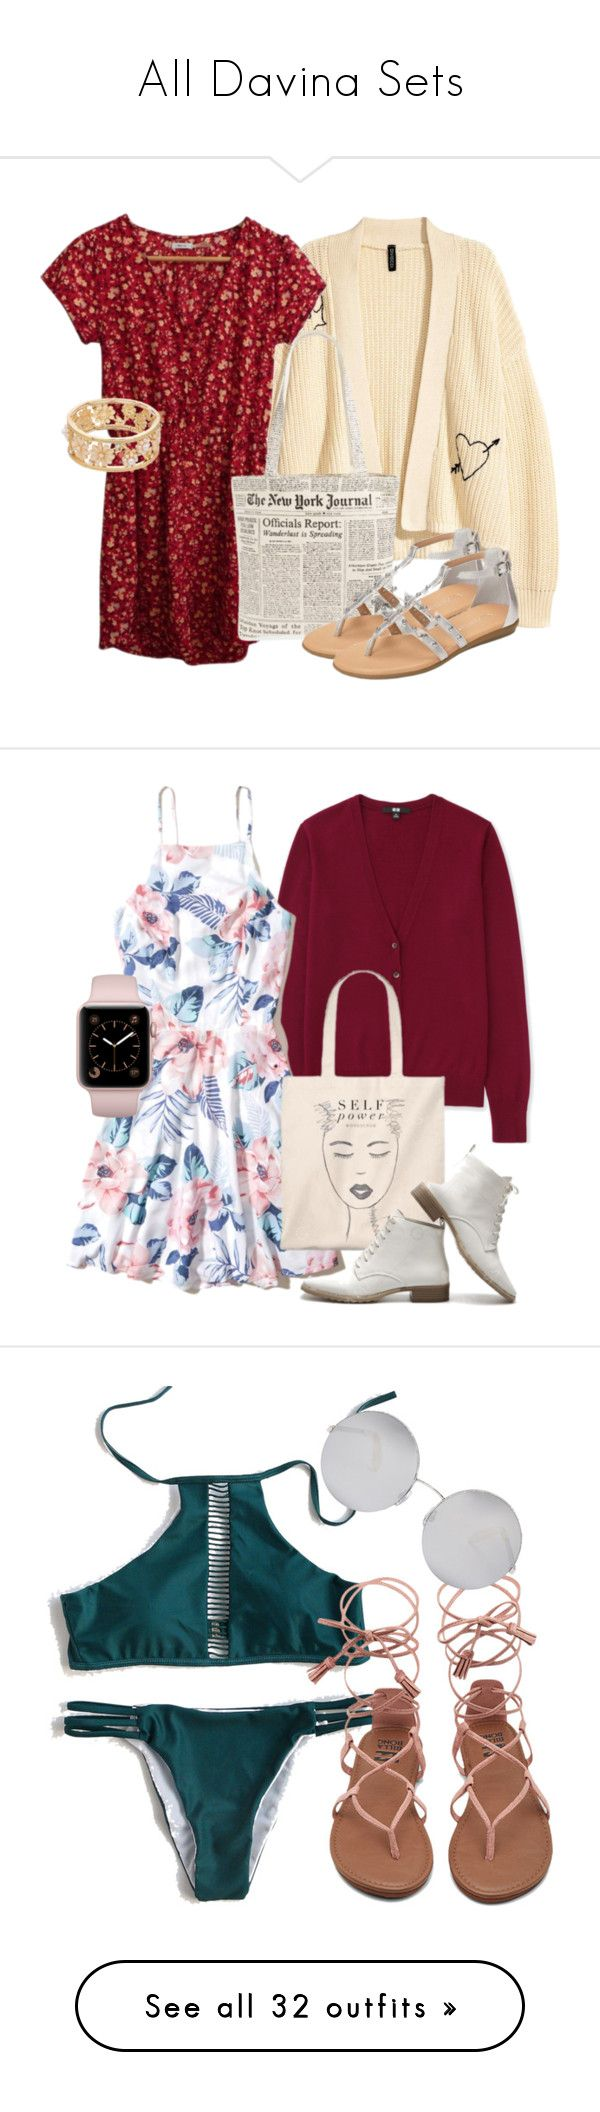 """""""All Davina Sets"""" by fangsandfashion ❤ liked on Polyvore featuring Urban Outfitters, Kate Spade, Aerosoles, Uniqlo, Hollister Co., WithChic, Victoria Beckham, New Look, Chicwish and BCBGeneration"""